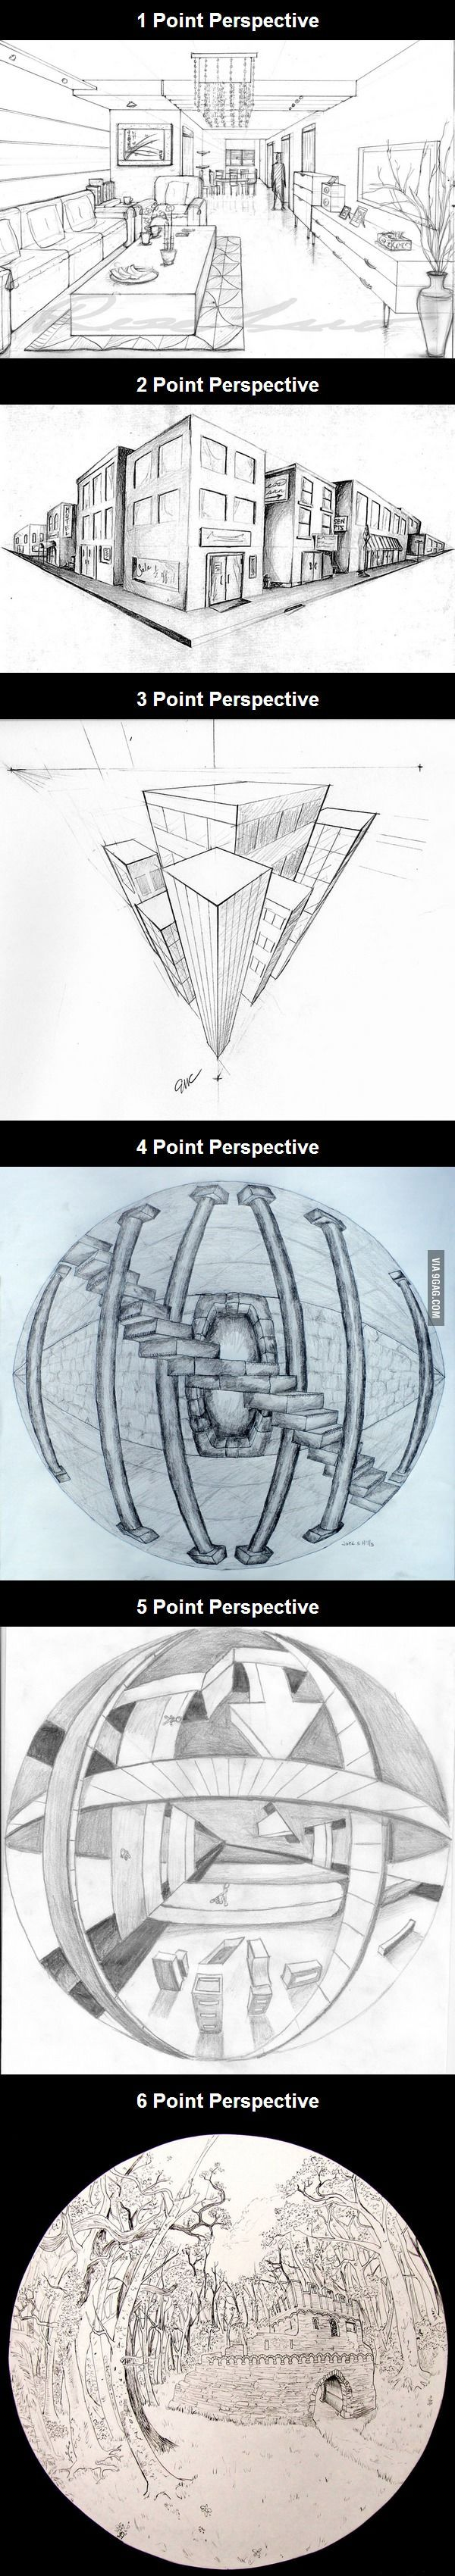 Perspective | Drawing Techniques | Pinterest | Drawing techniques ...